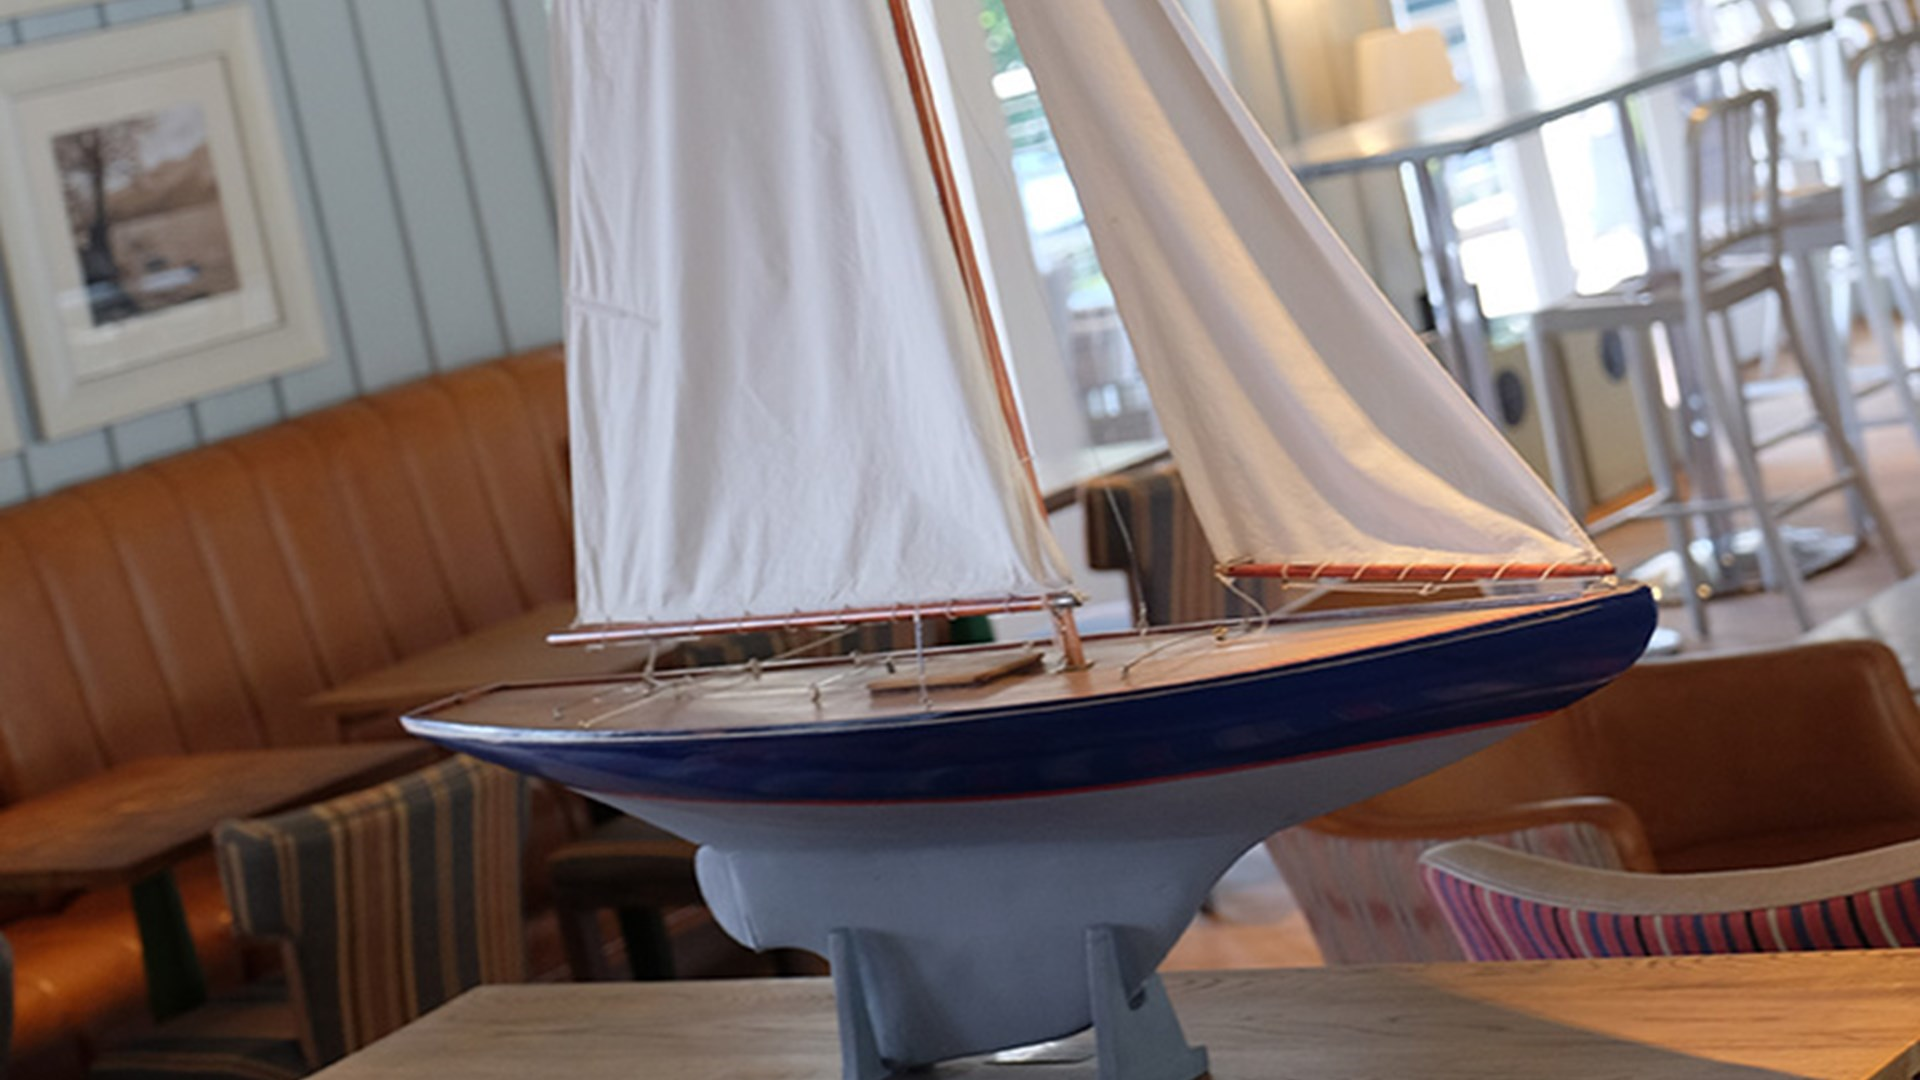 Large model sailboat used as decoration atop a table in the boat house bar